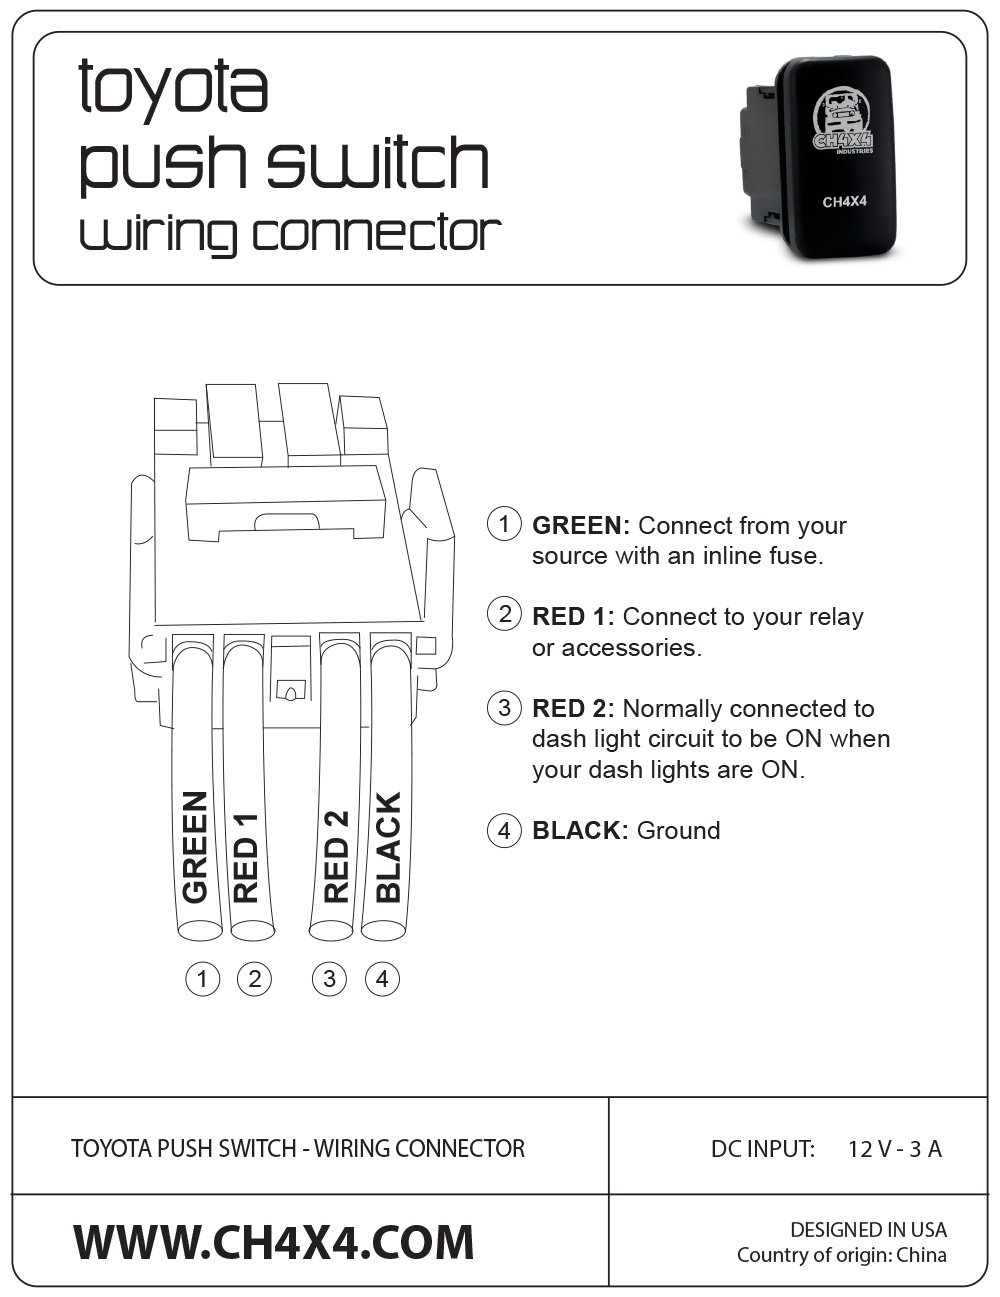 Amazon.com: CH4X4 Push Switch for Toyota Tacoma 3rd Gen - Led Light on dimmer switch installation diagram, light switch cabinet, light switch cover, light switch power diagram, light switch installation, light switch timer, circuit diagram, light switch piping diagram, light switch with receptacle, wall light switch diagram, electrical outlets diagram,